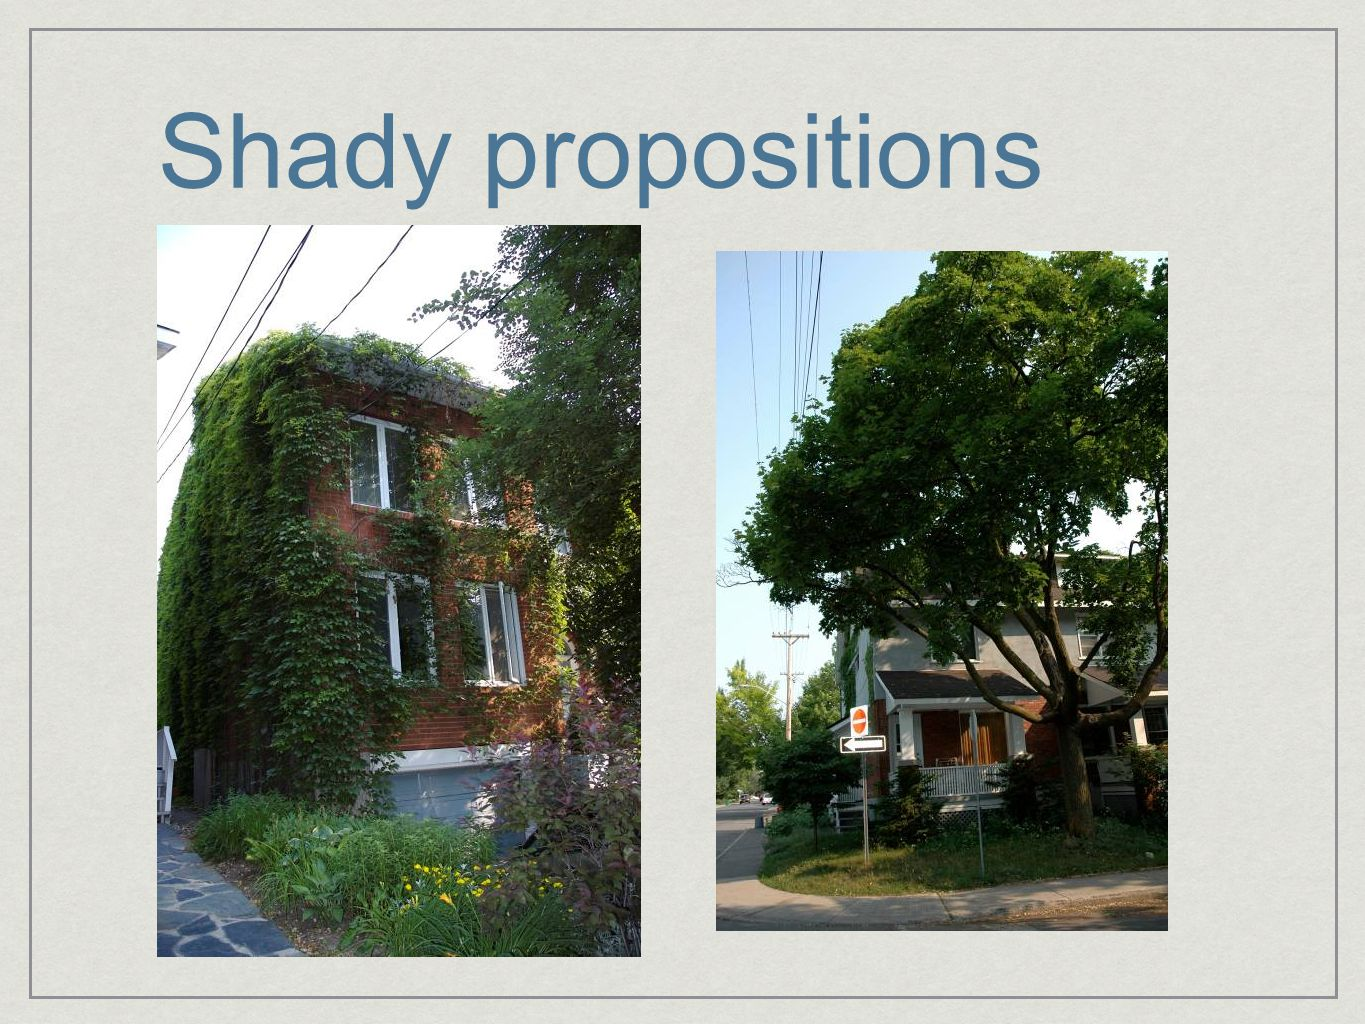 Shady propositions